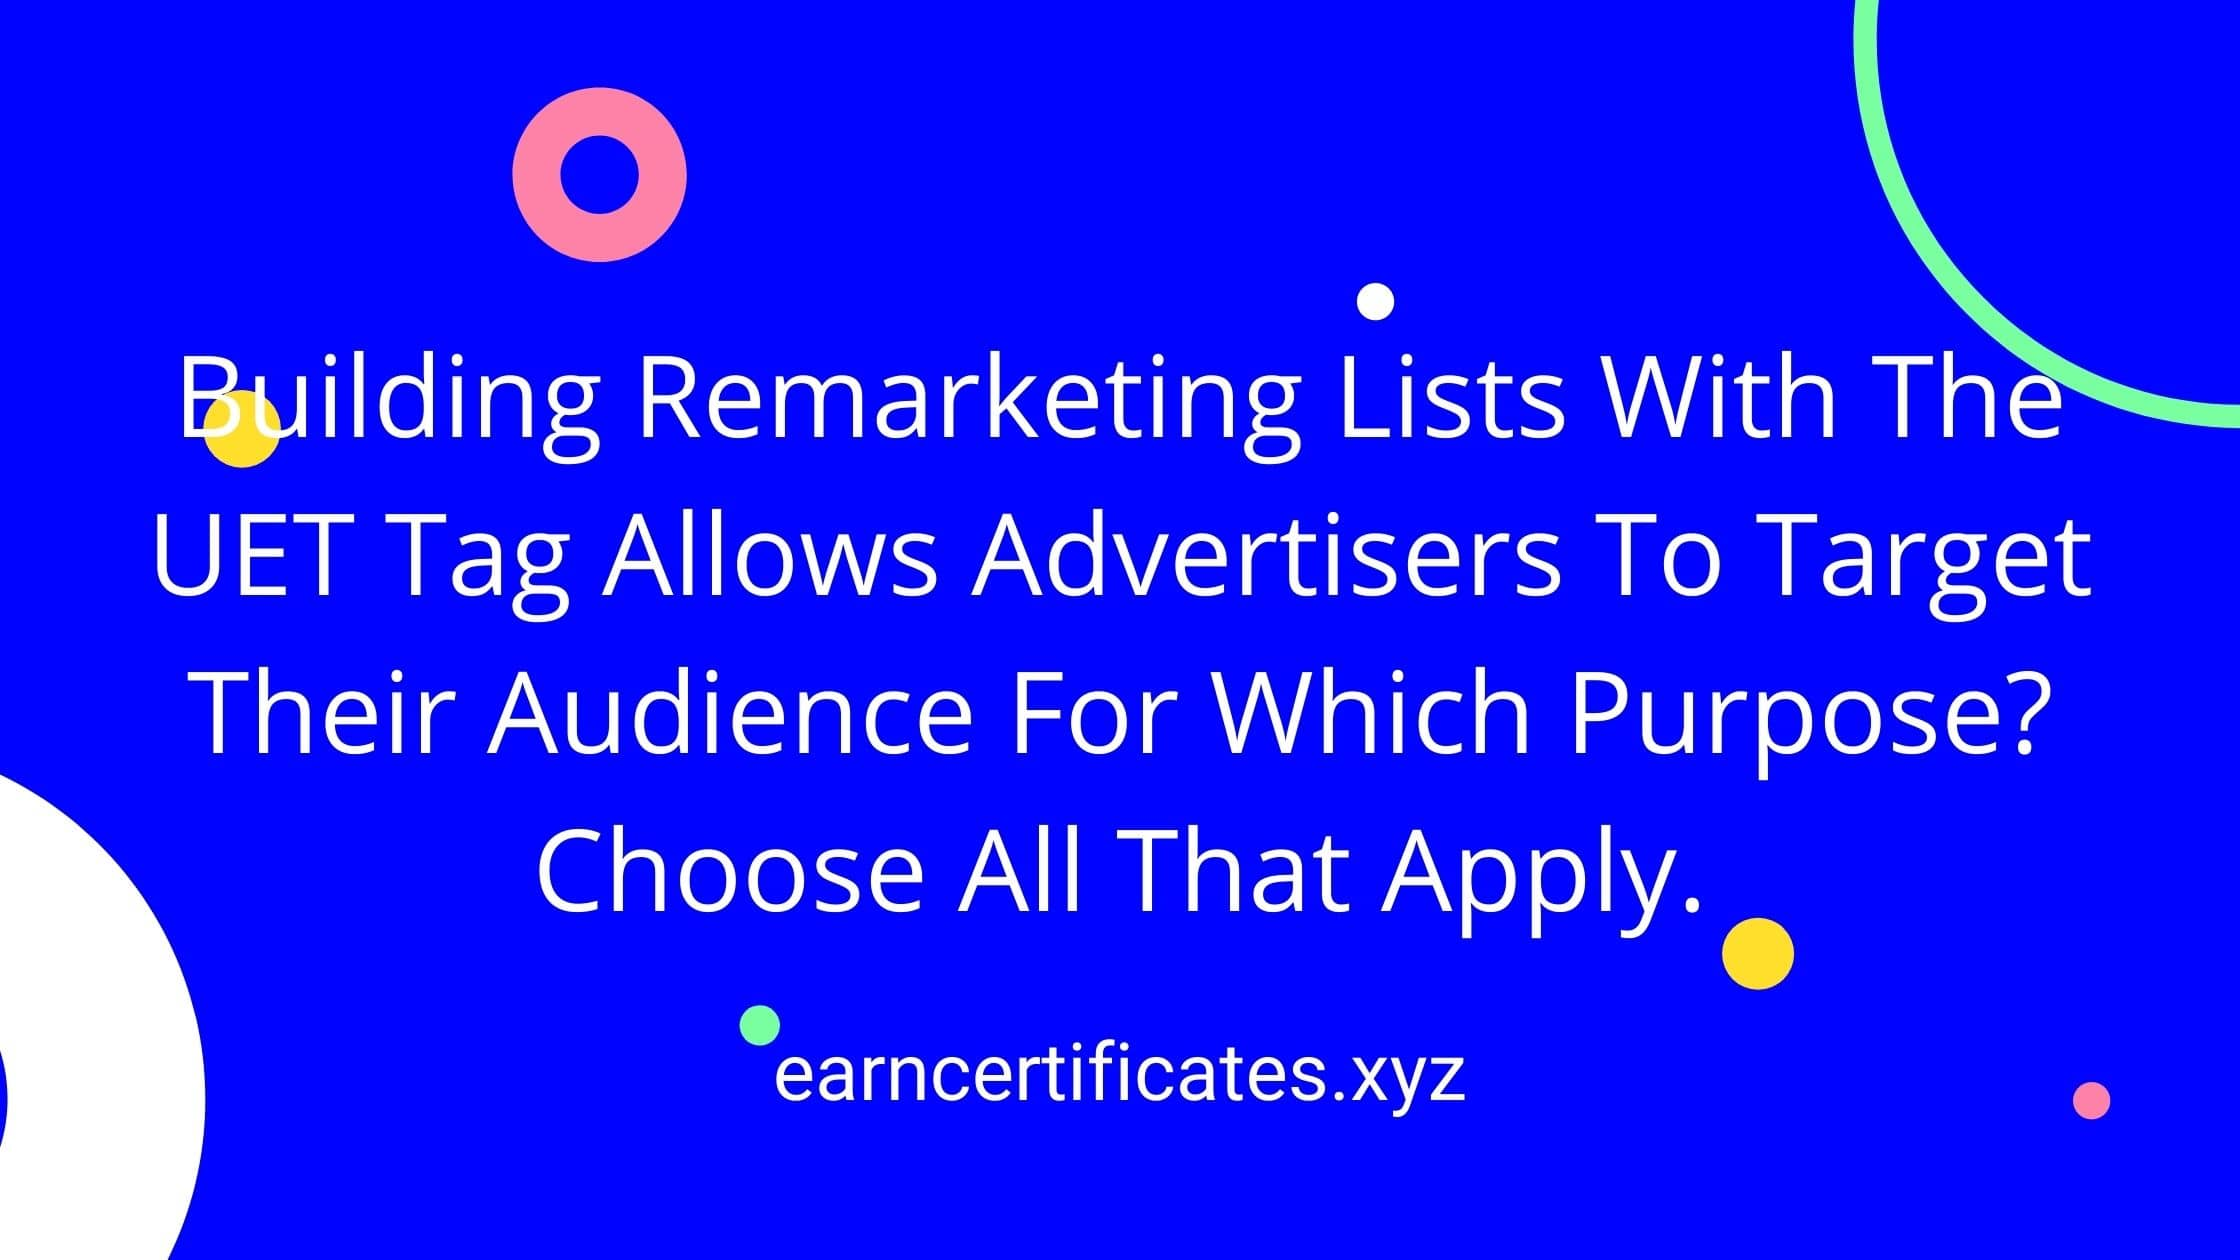 Building Remarketing Lists With The UET Tag Allows Advertisers To Target Their Audience For Which Purpose? Choose All That Apply.